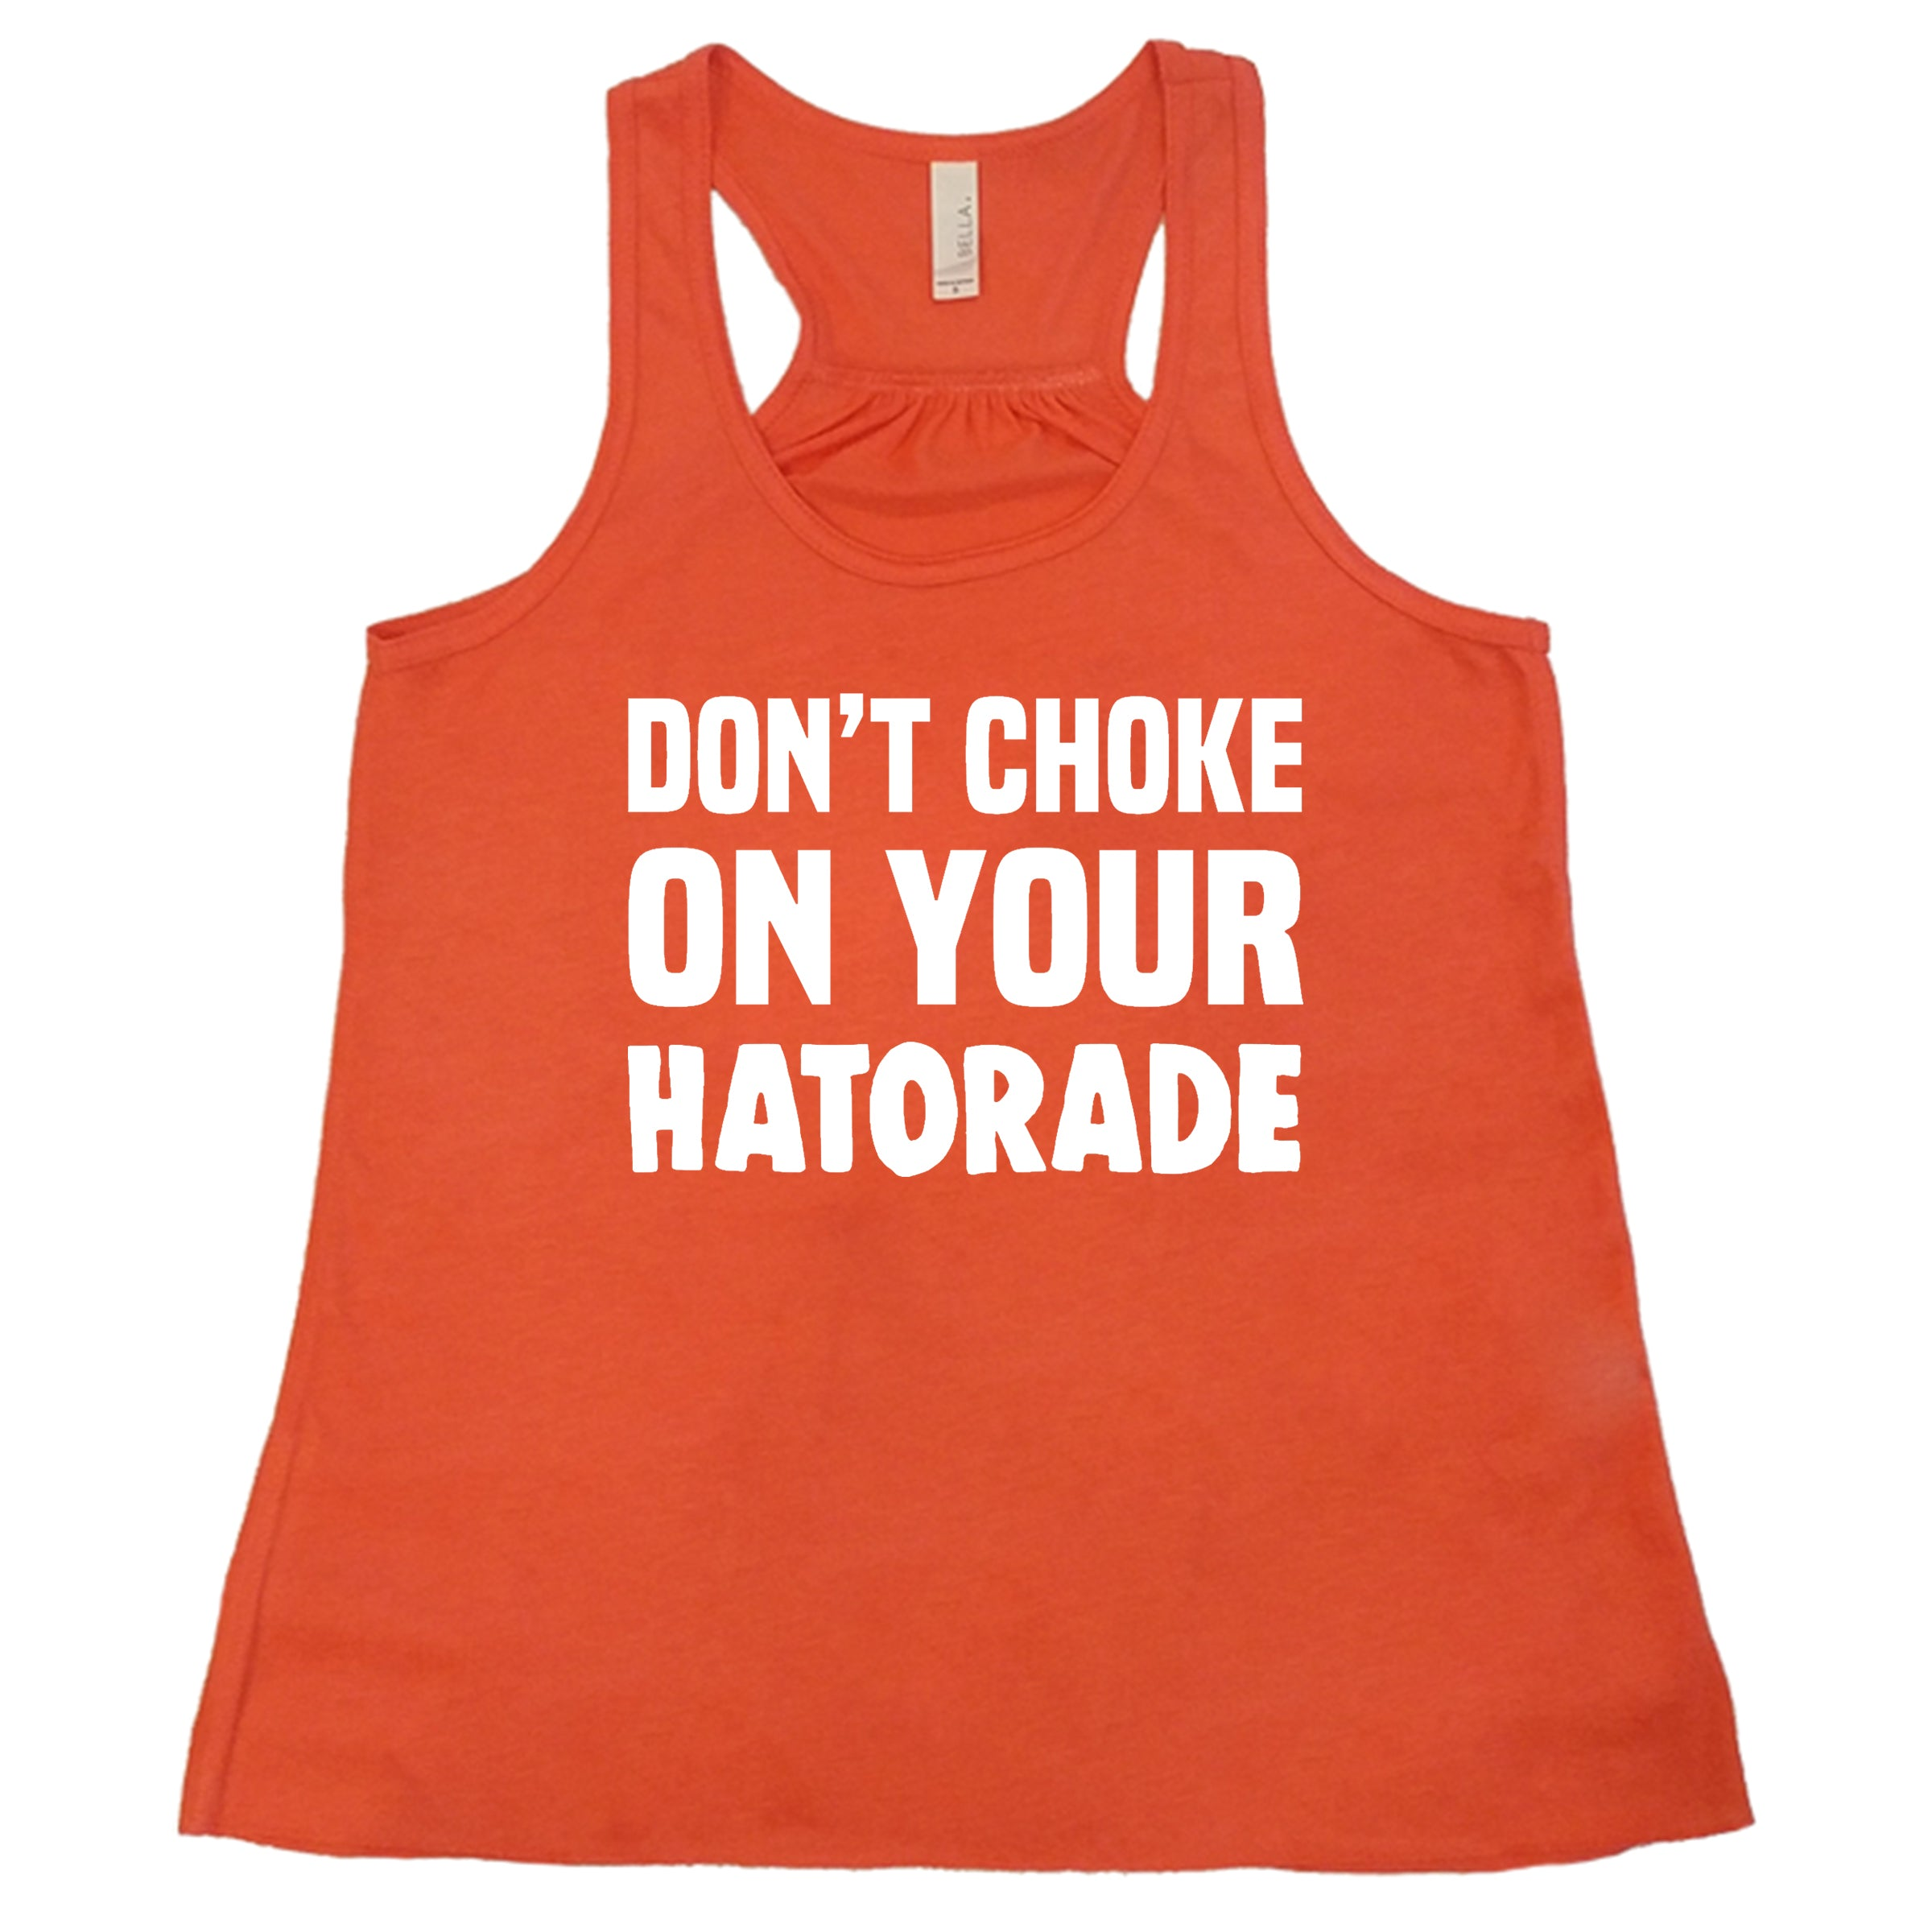 Don't Choke On Your Hatorade Shirt